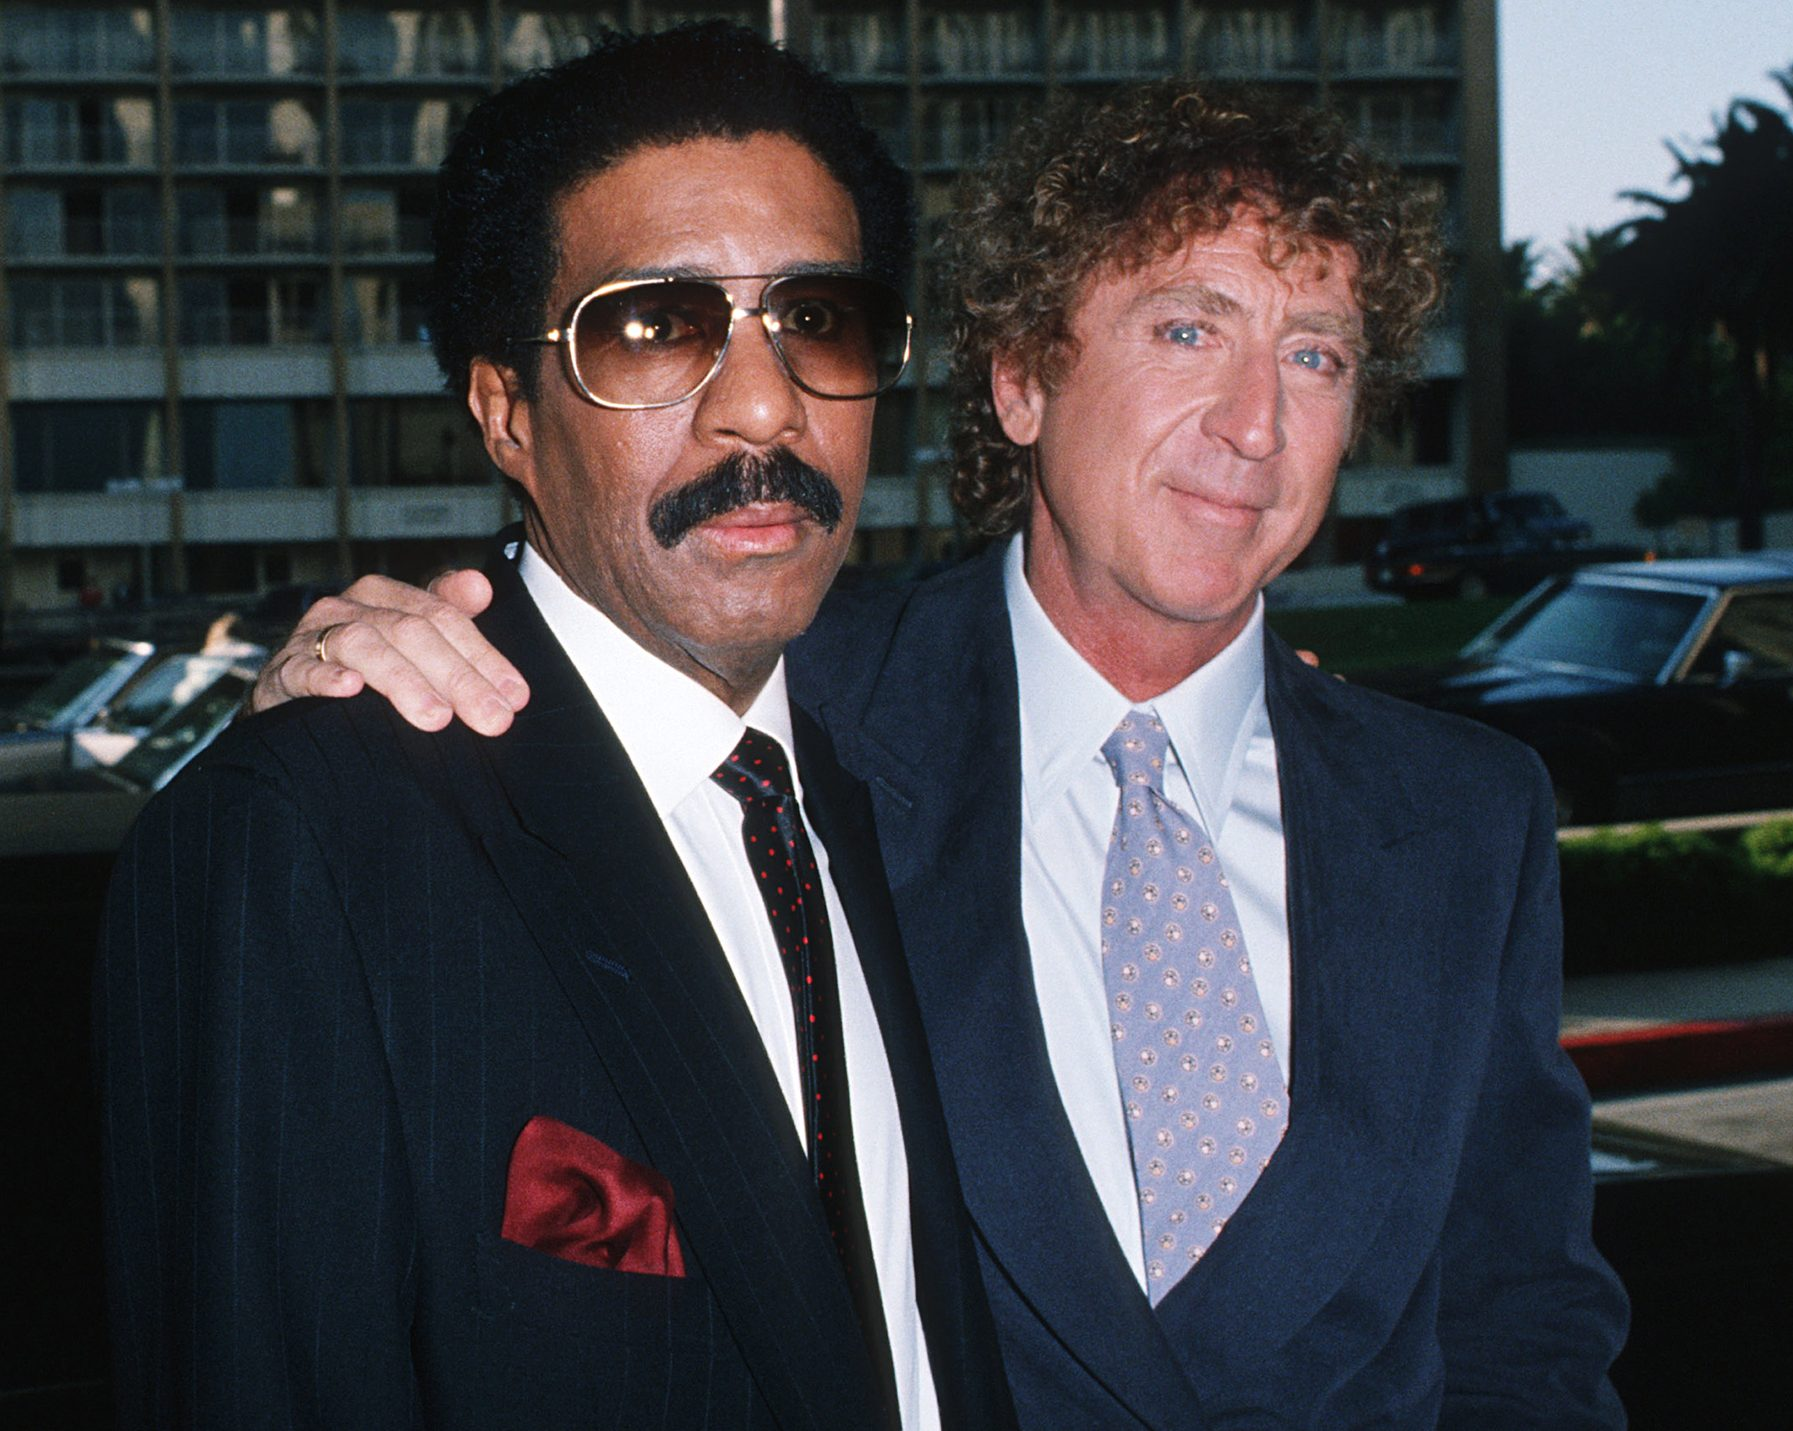 160830 wilder pryor mn 1335 06aee02f801015fdaff8ad3e02ce2a9e e1606821318779 20 Things You Might Not Have Known About Richard Pryor